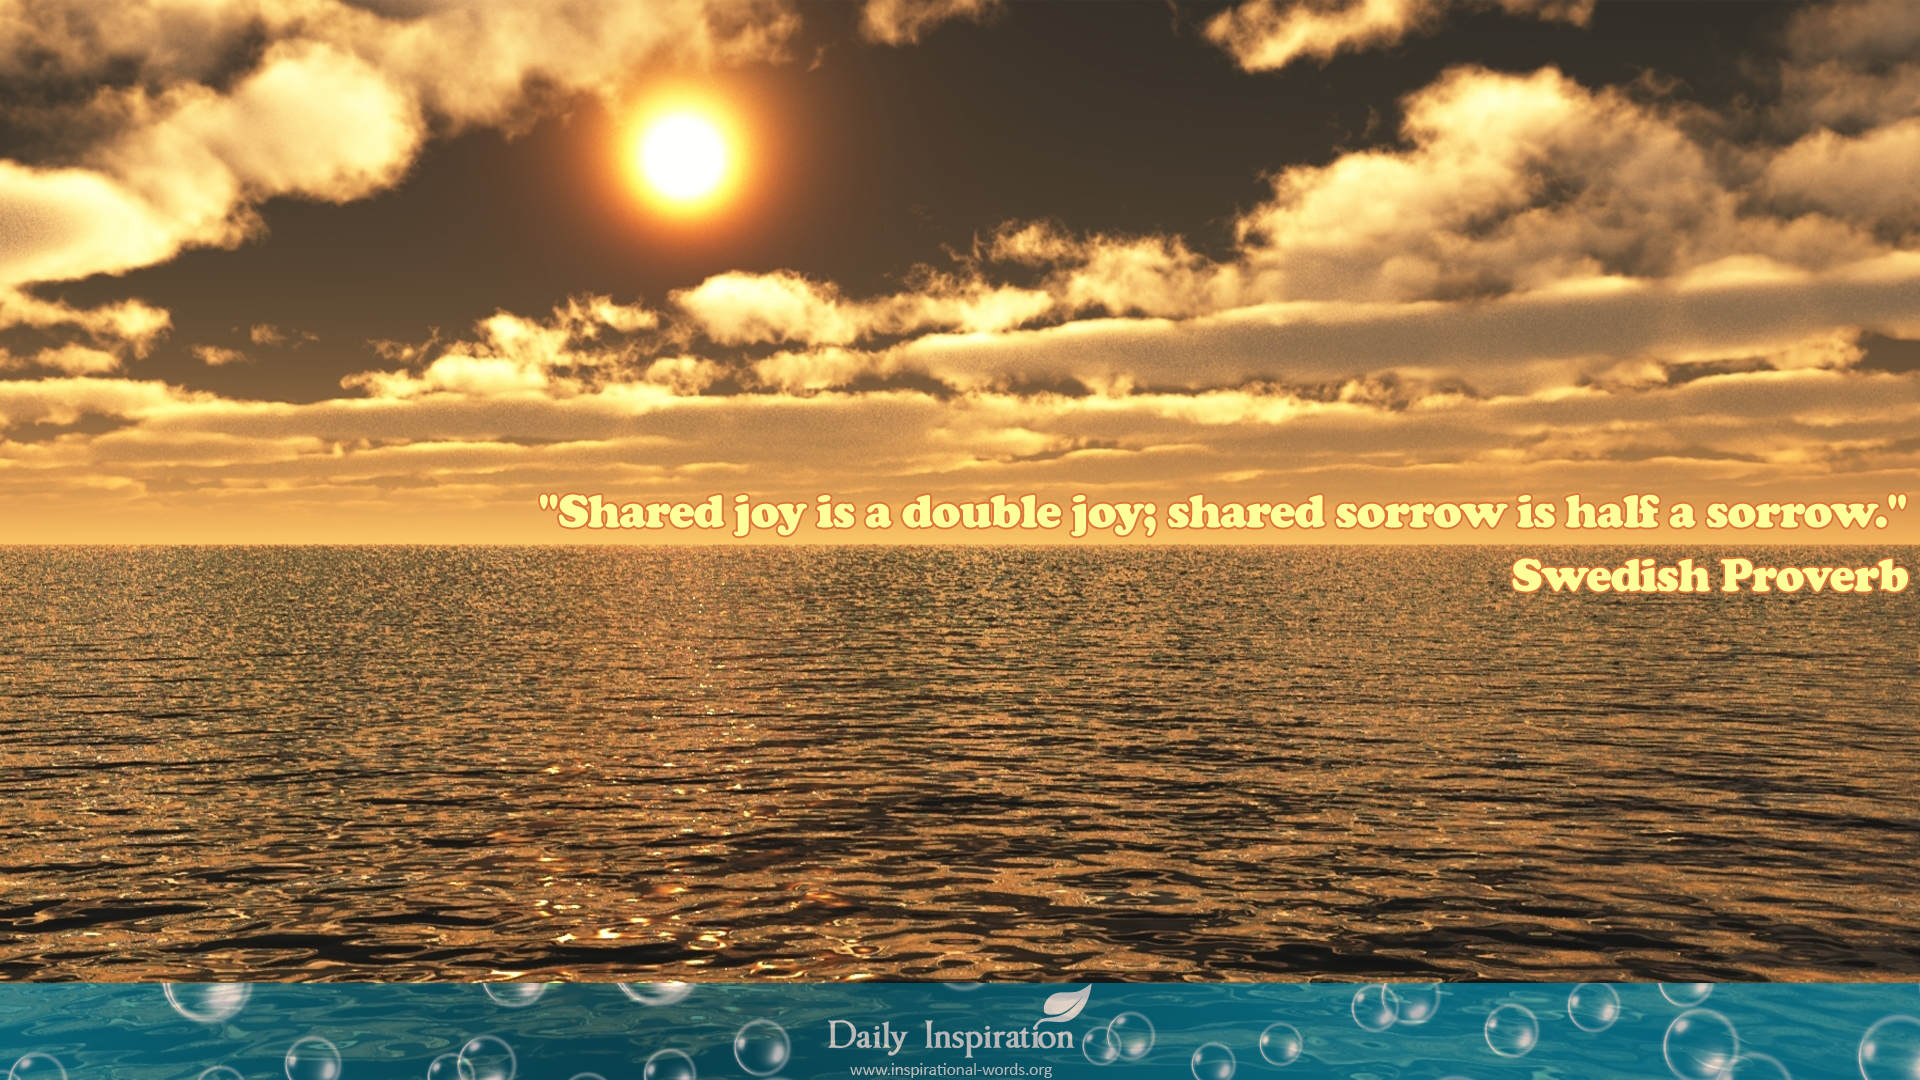 Swedish Proverb shared joy